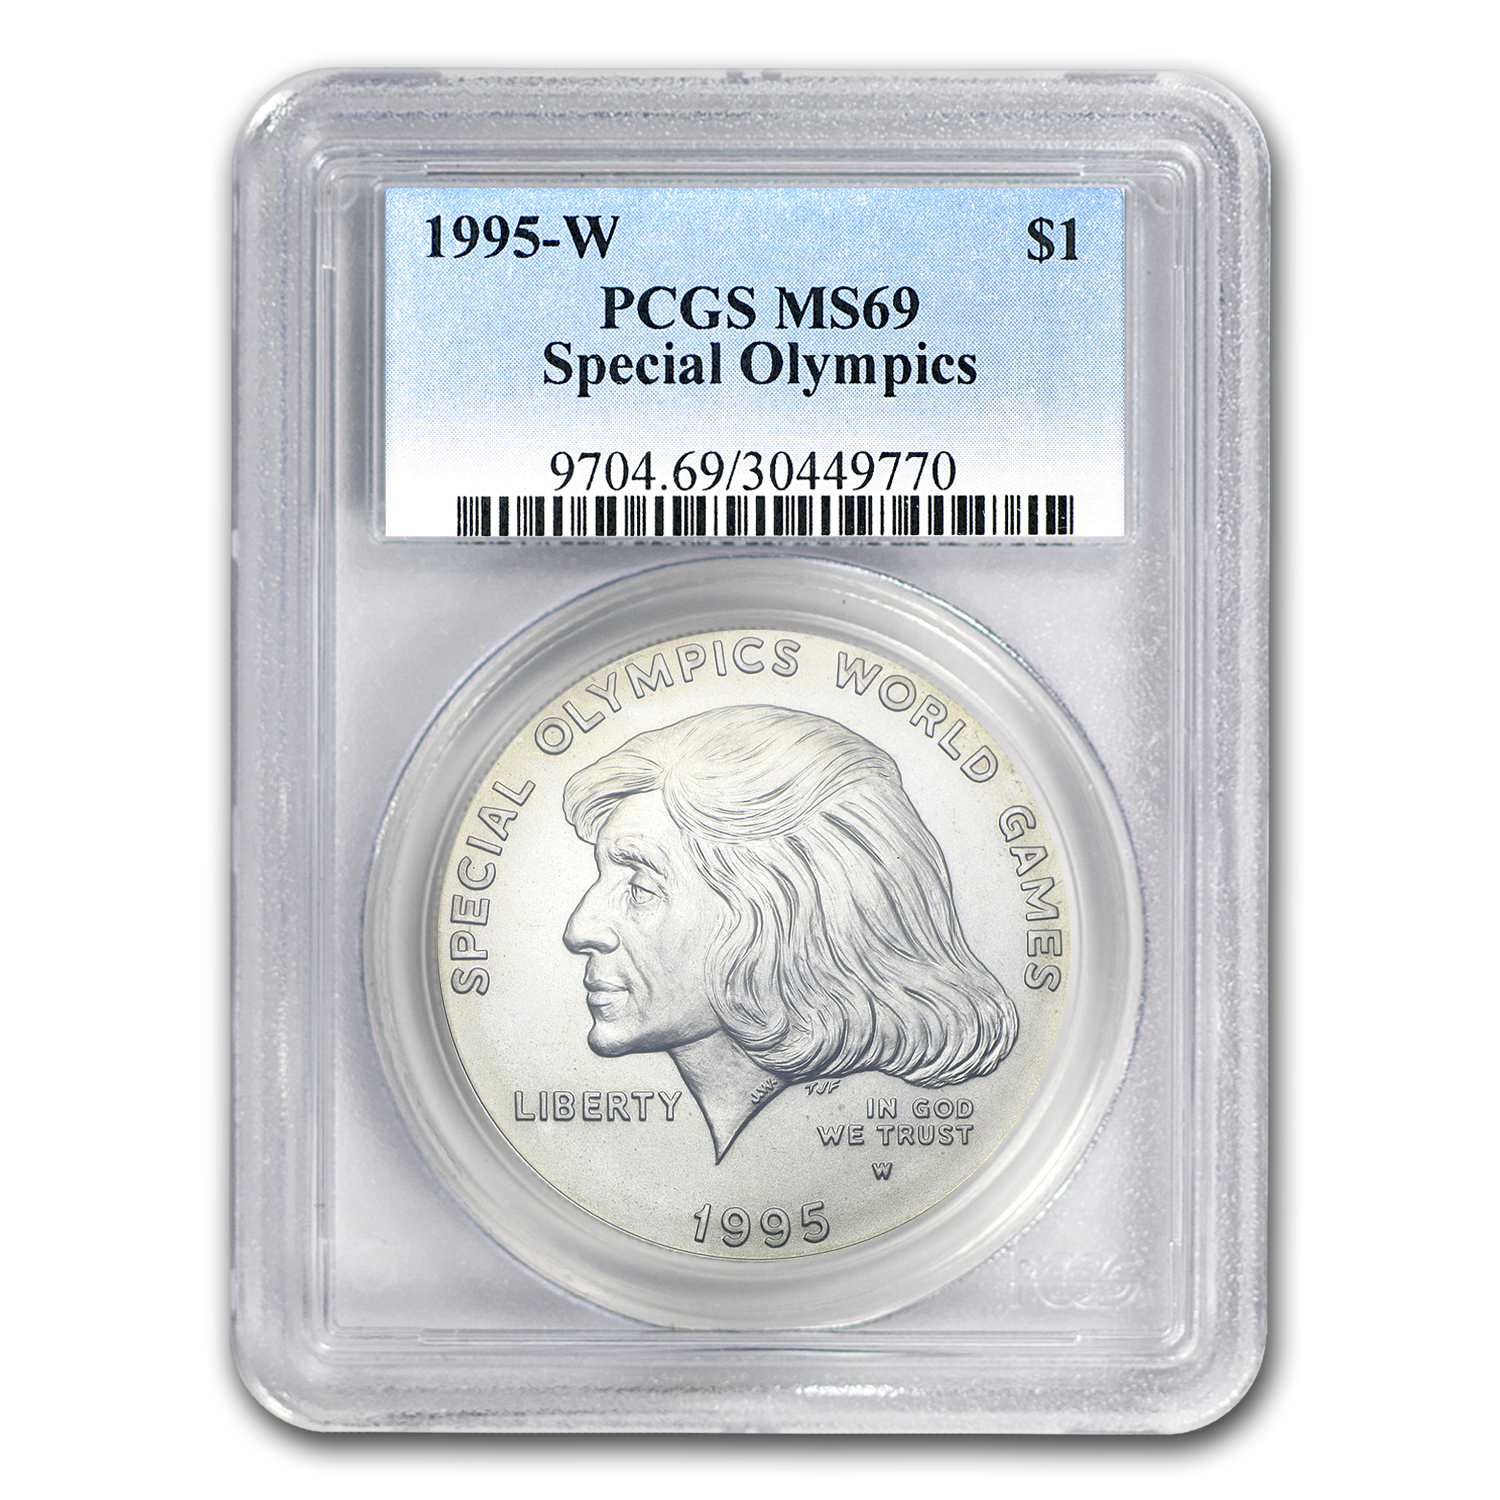 1995-W Special Olympics $1 Silver Commemorative - MS-69 PCGS